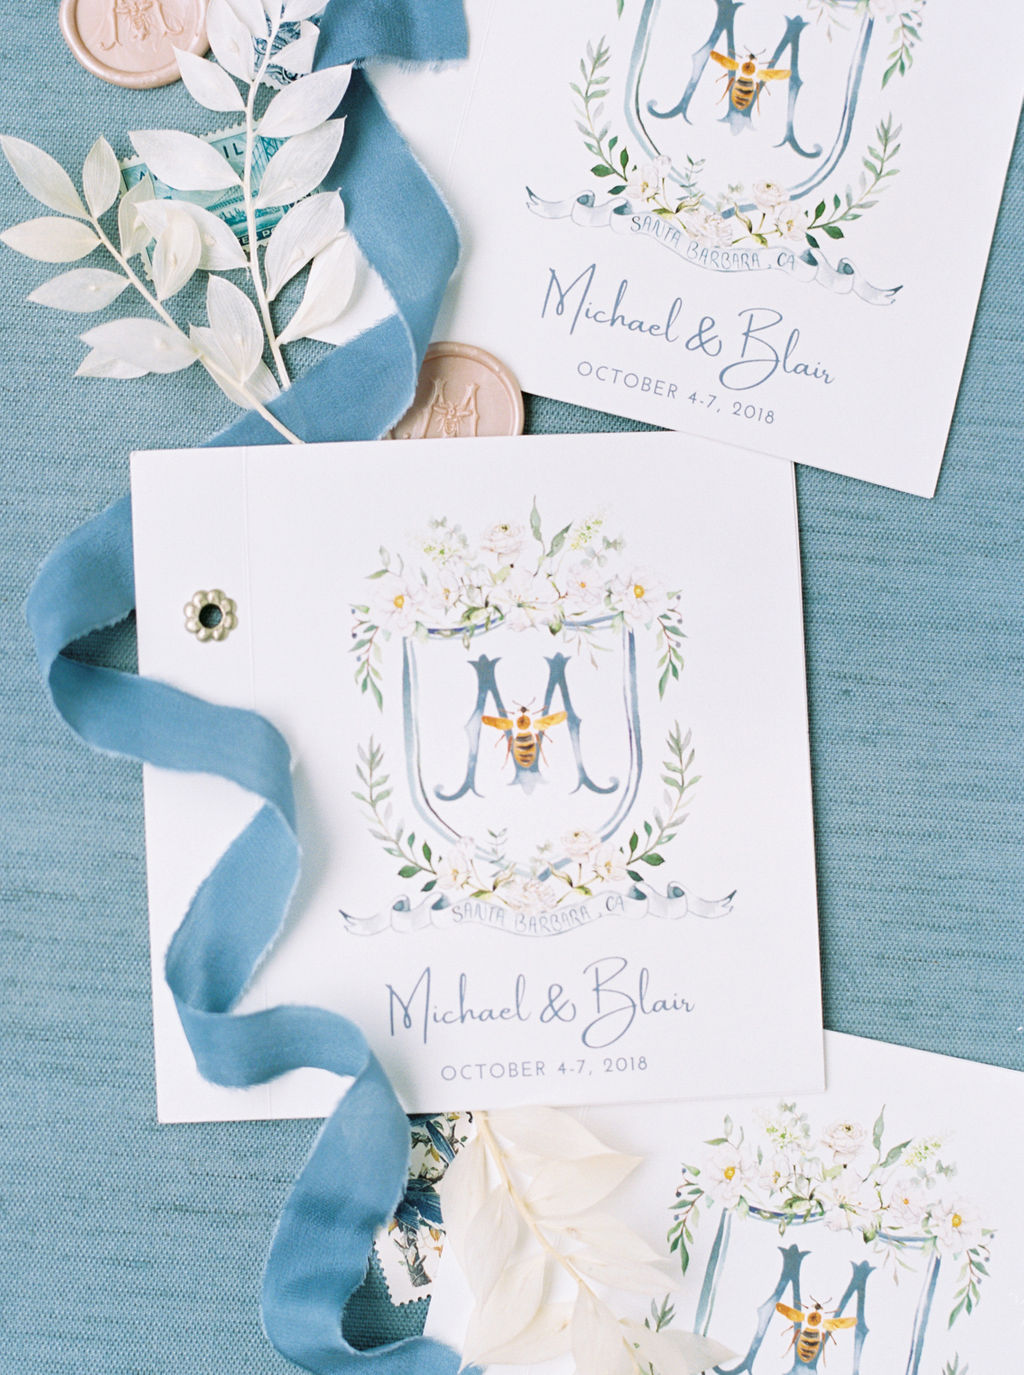 custom wedding invitation details.JPG